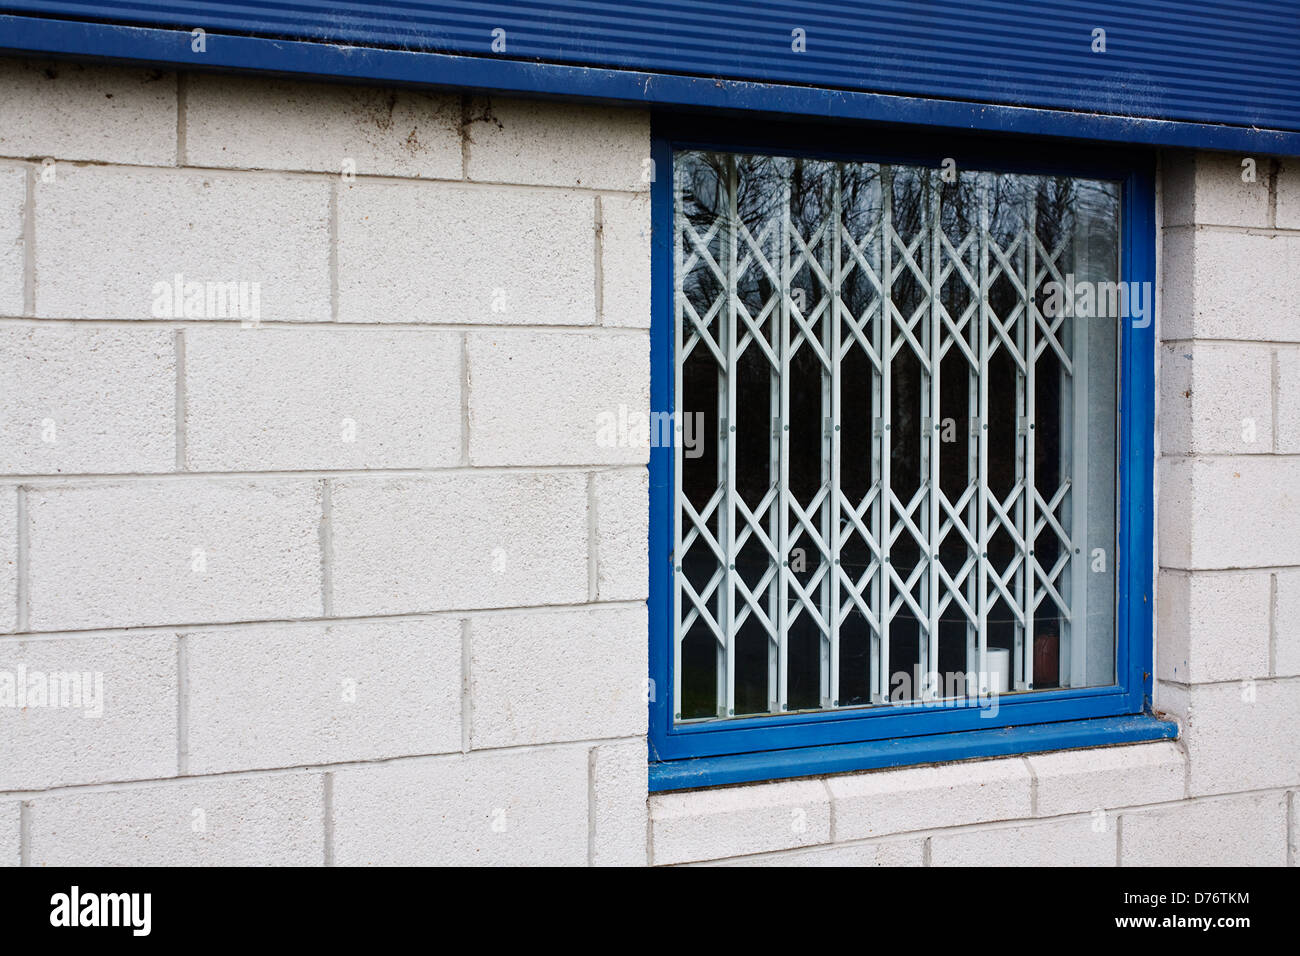 Internal Window Security Shutters To Prevent And Deter